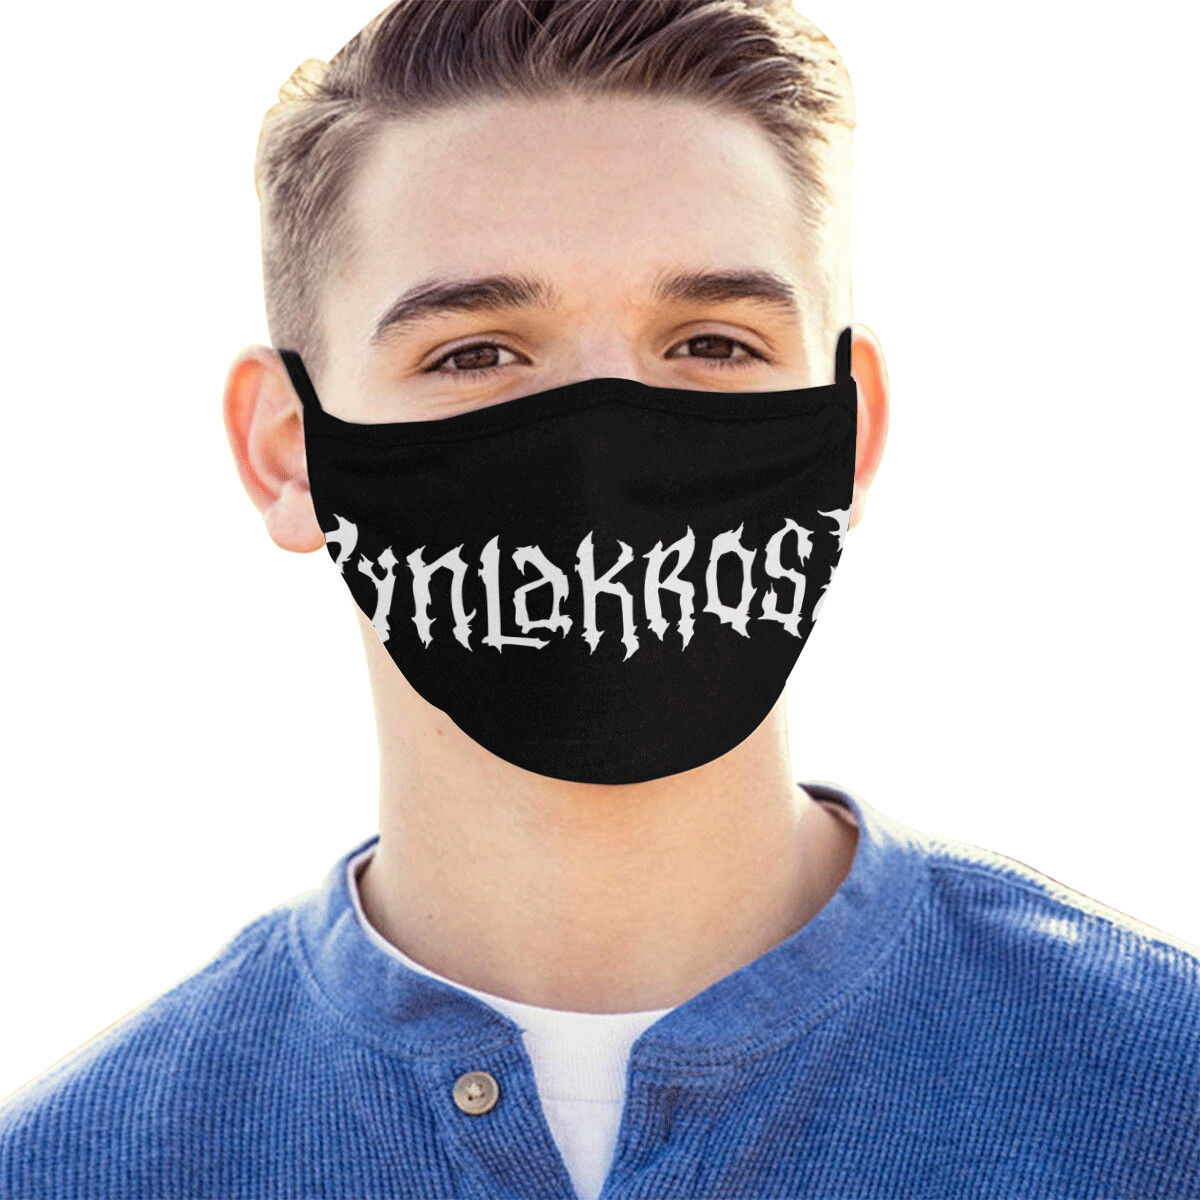 SynlakrosS Face Mask (adults and kids)